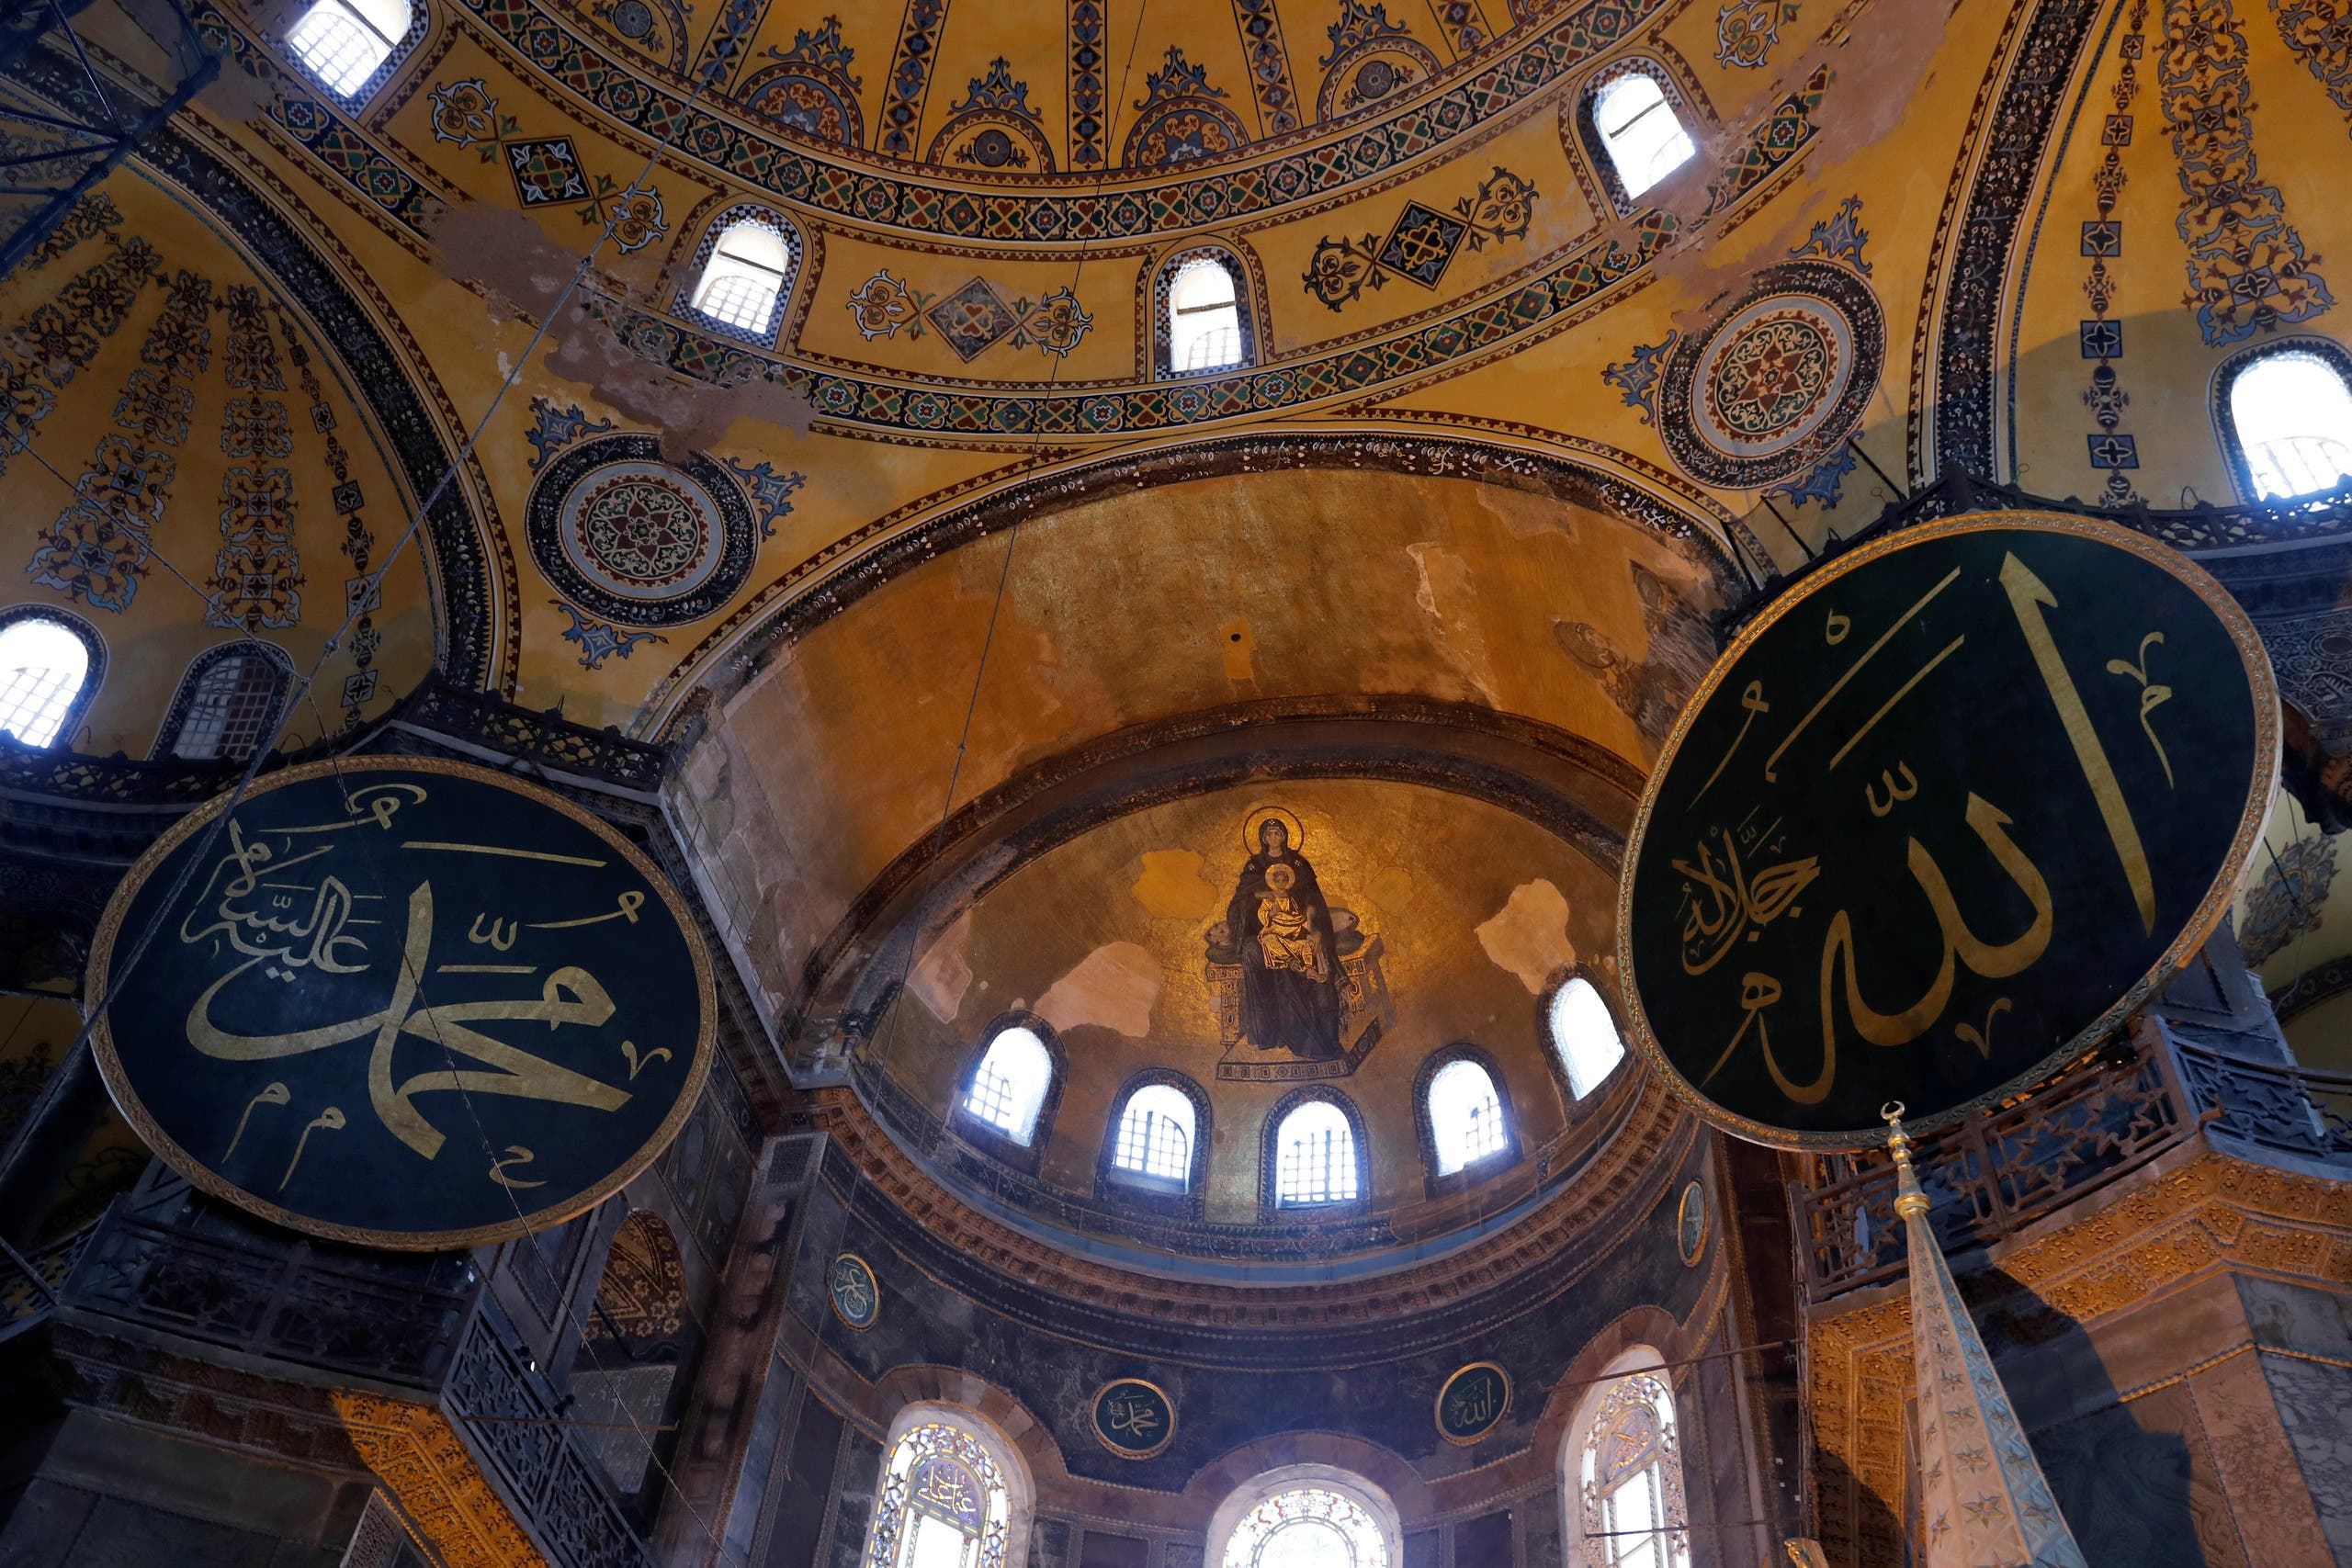 A mosaic depicting The Virgin Mary and Jesus is seen at Hagia Sophia, in Istanbul, Turkey, July 2, 2020. (Reuters)